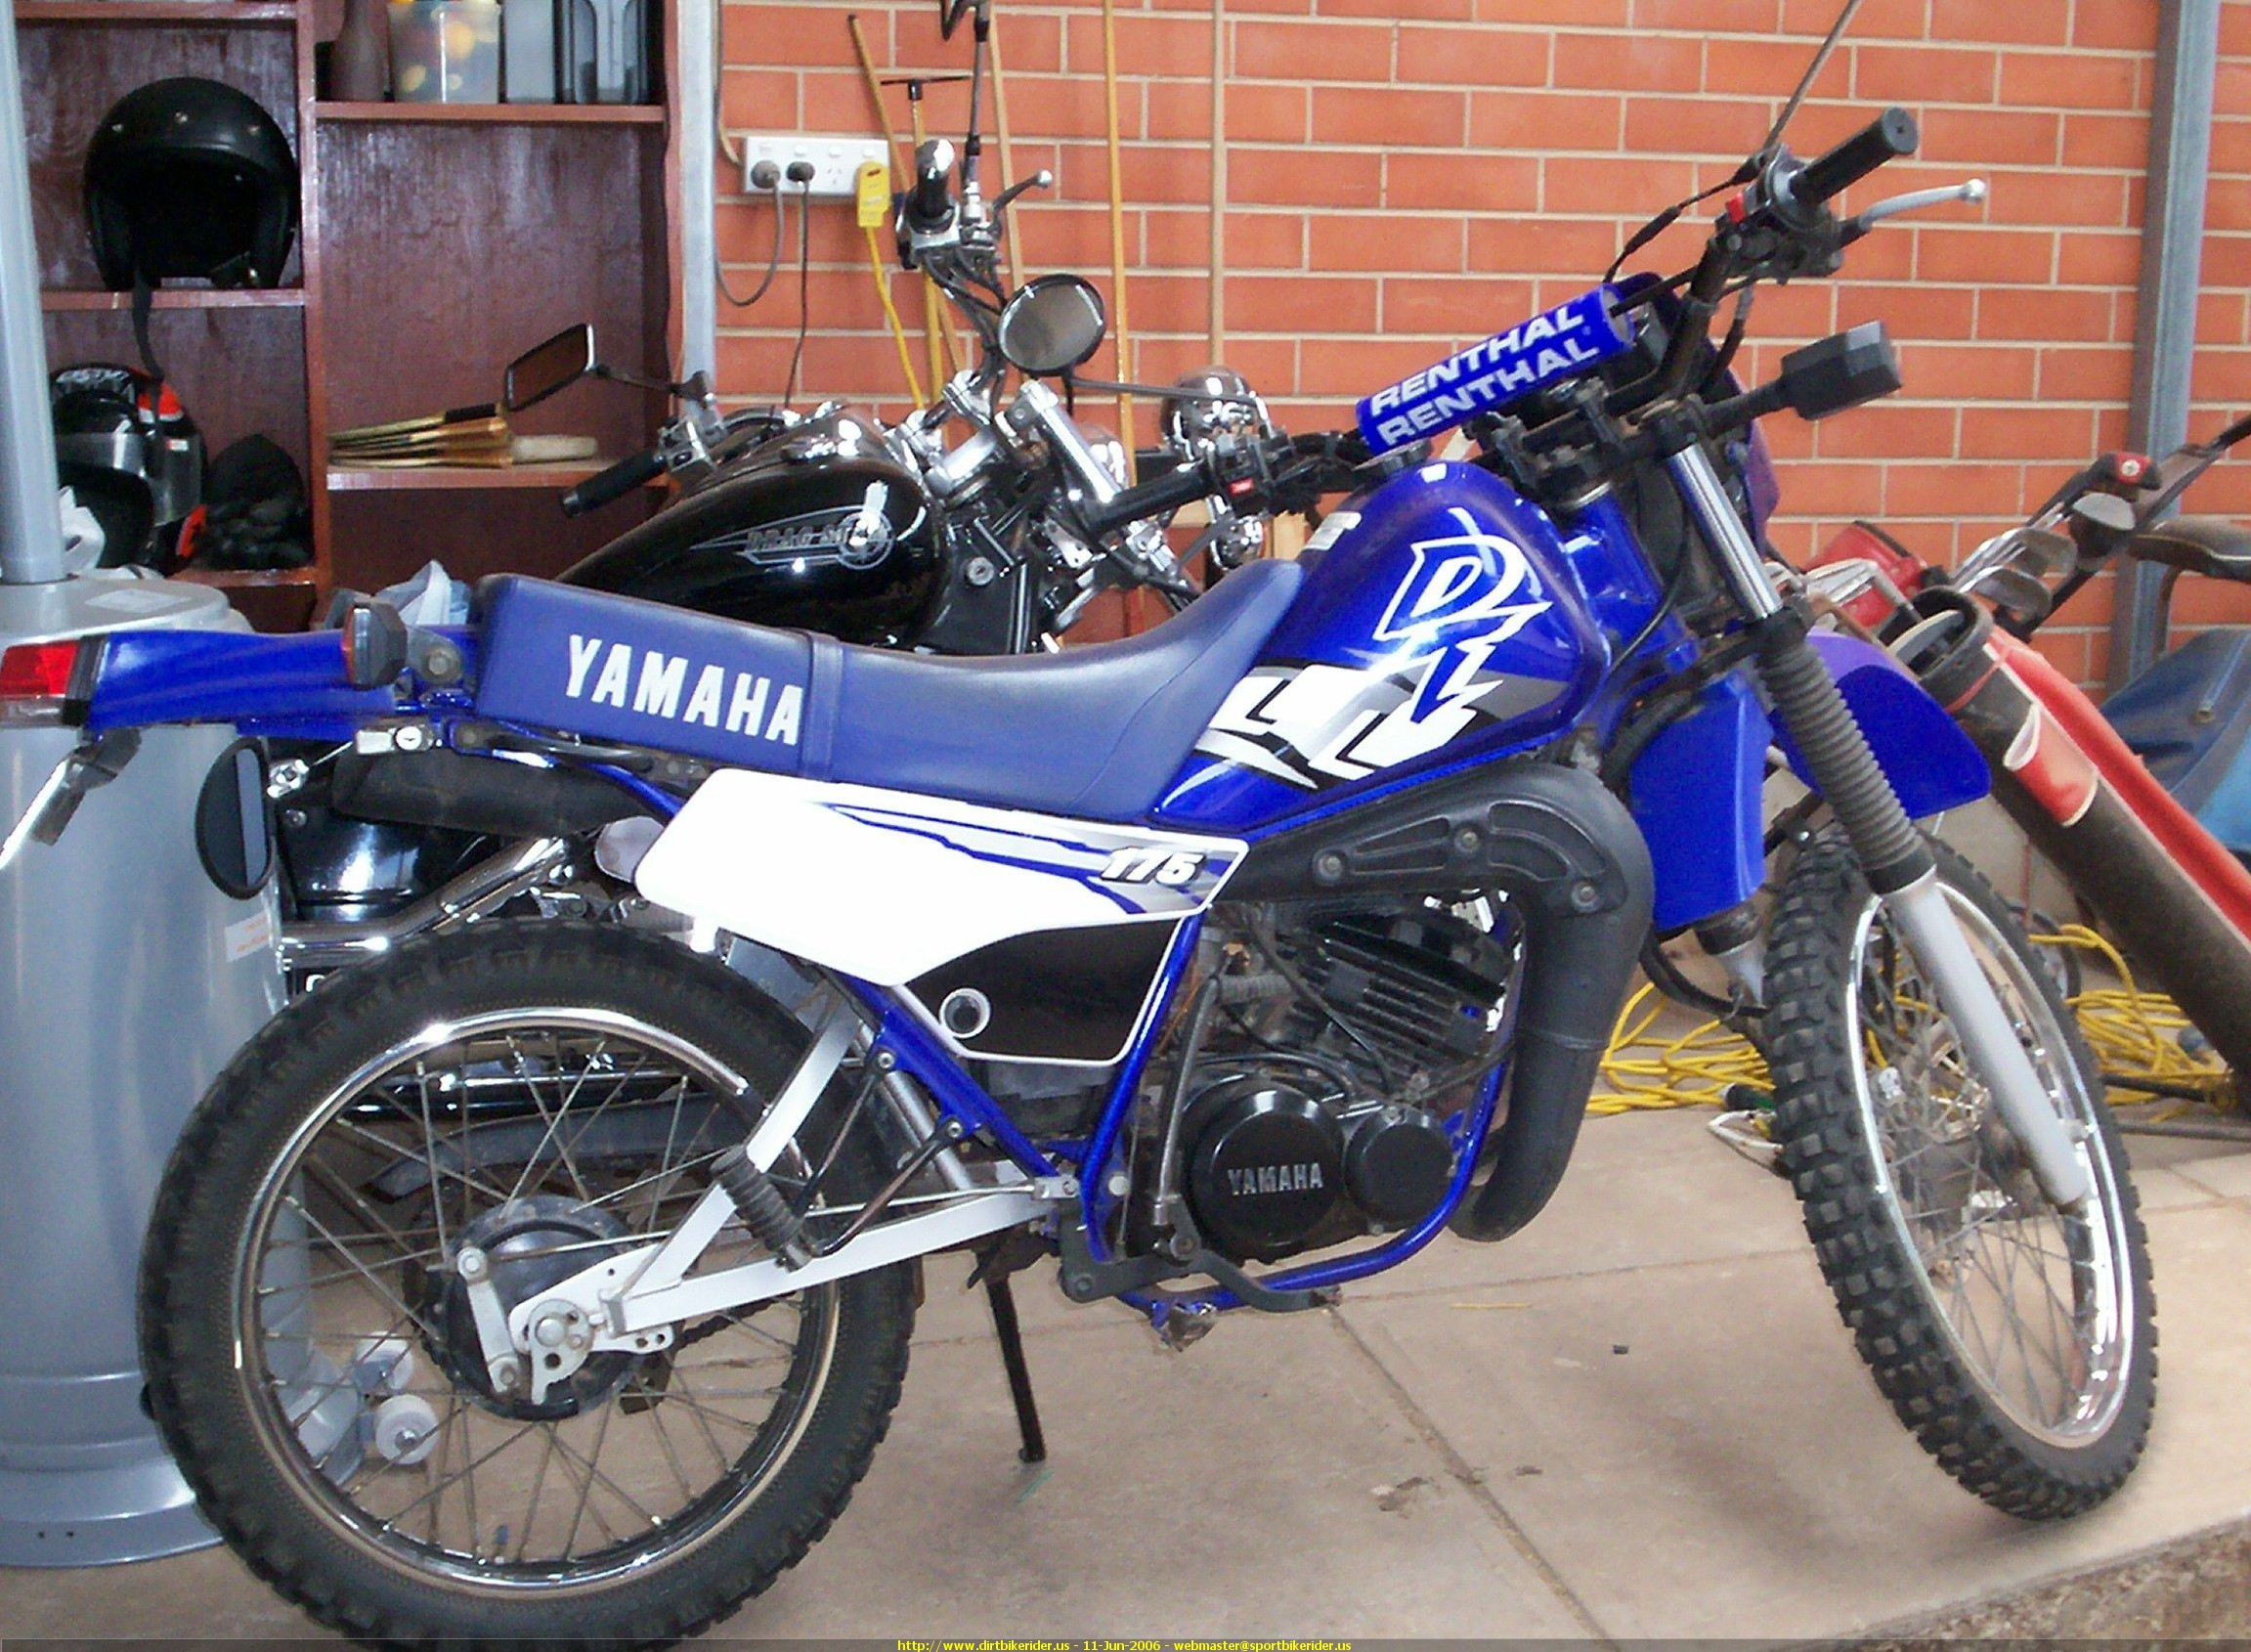 1975 yamaha dt 175 pics specs and information for Yamaha 175 sho